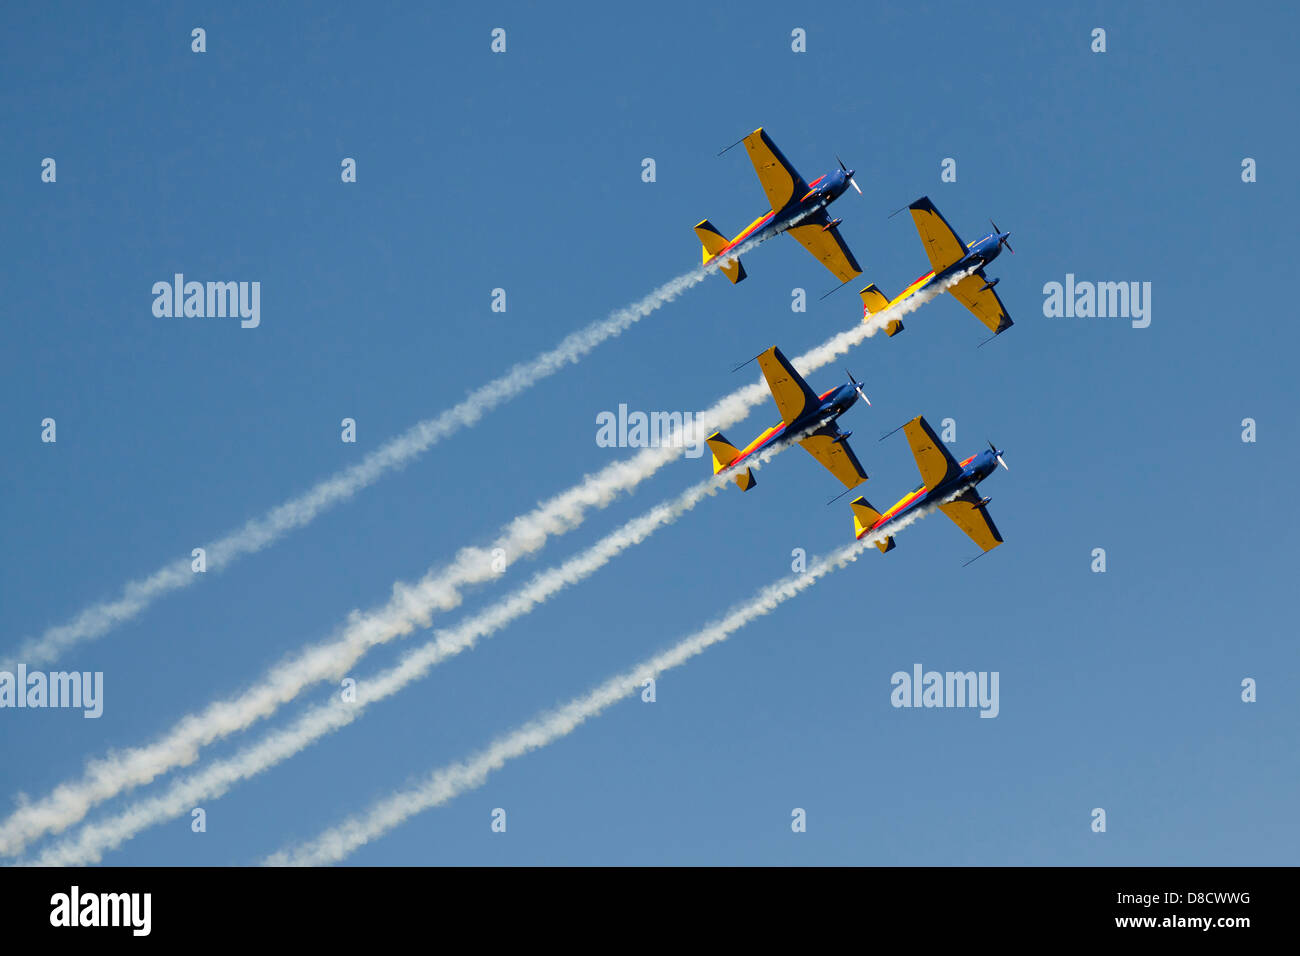 airplanes on a blue background leaving a smoke trail - Stock Image